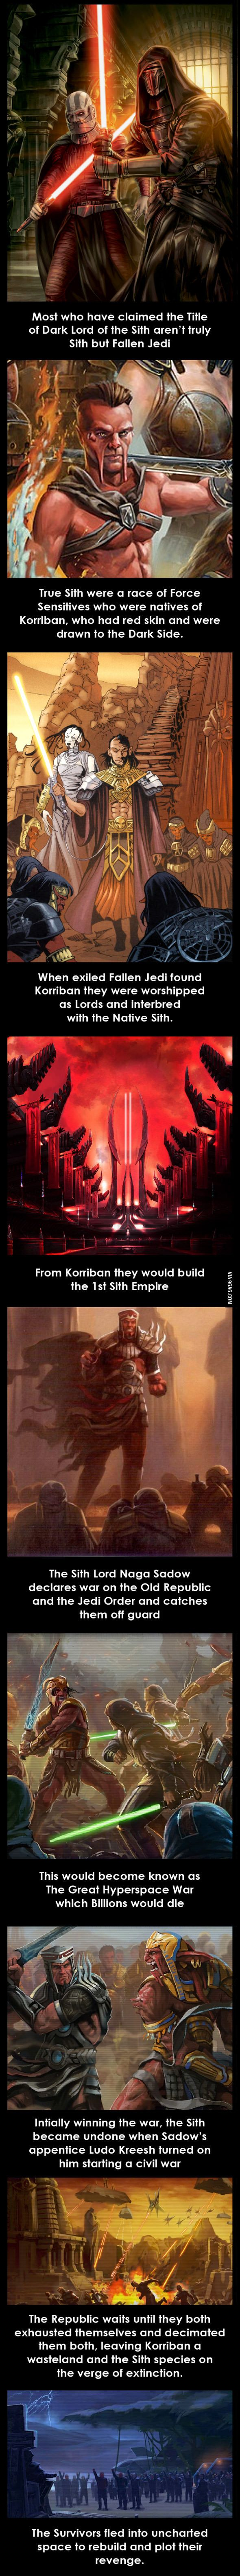 The Origins Of The Sith (Pre-Disney) - Sort of Right but there was so many battles, I can see how it got lost in translation